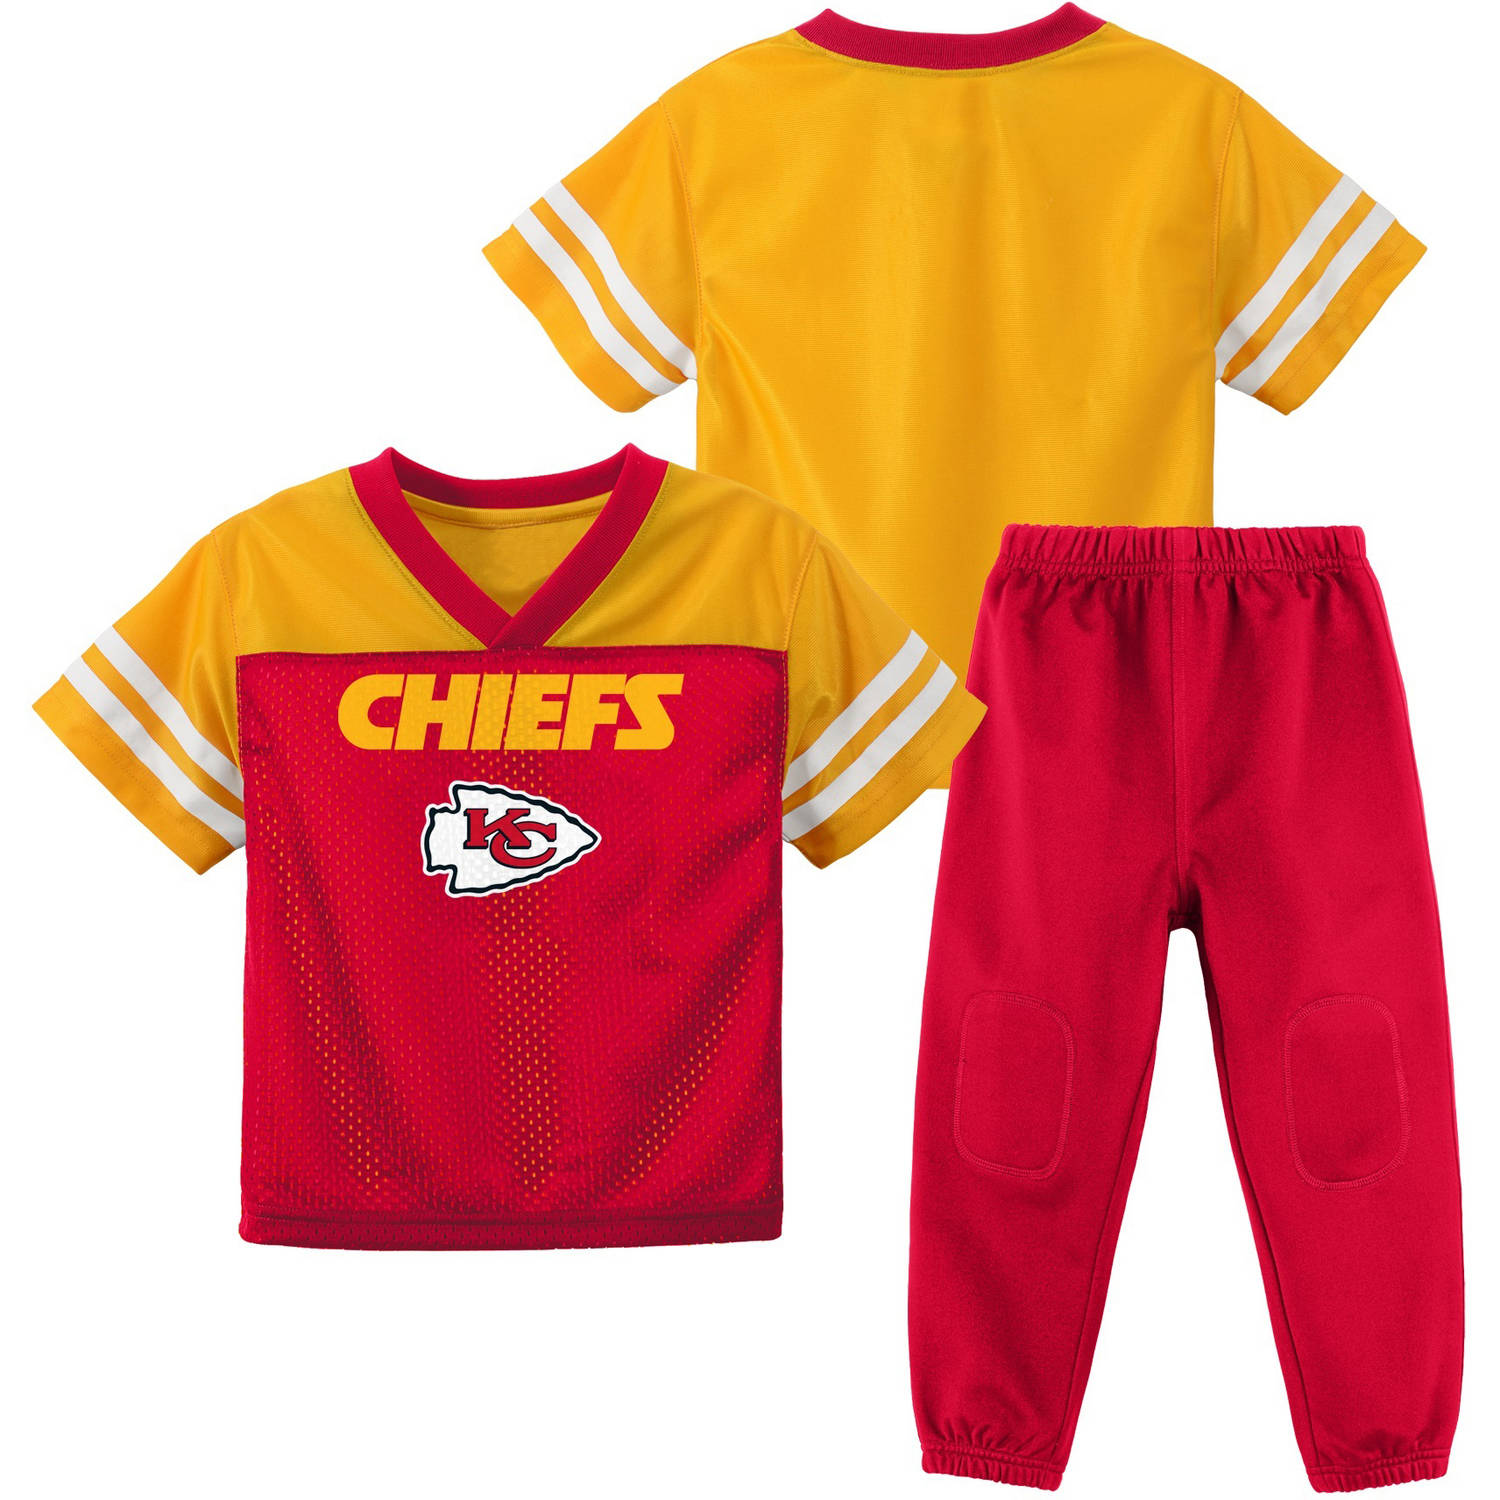 NFL Kansas City Chiefs Toddler Short Sleeve Top and Pant Set